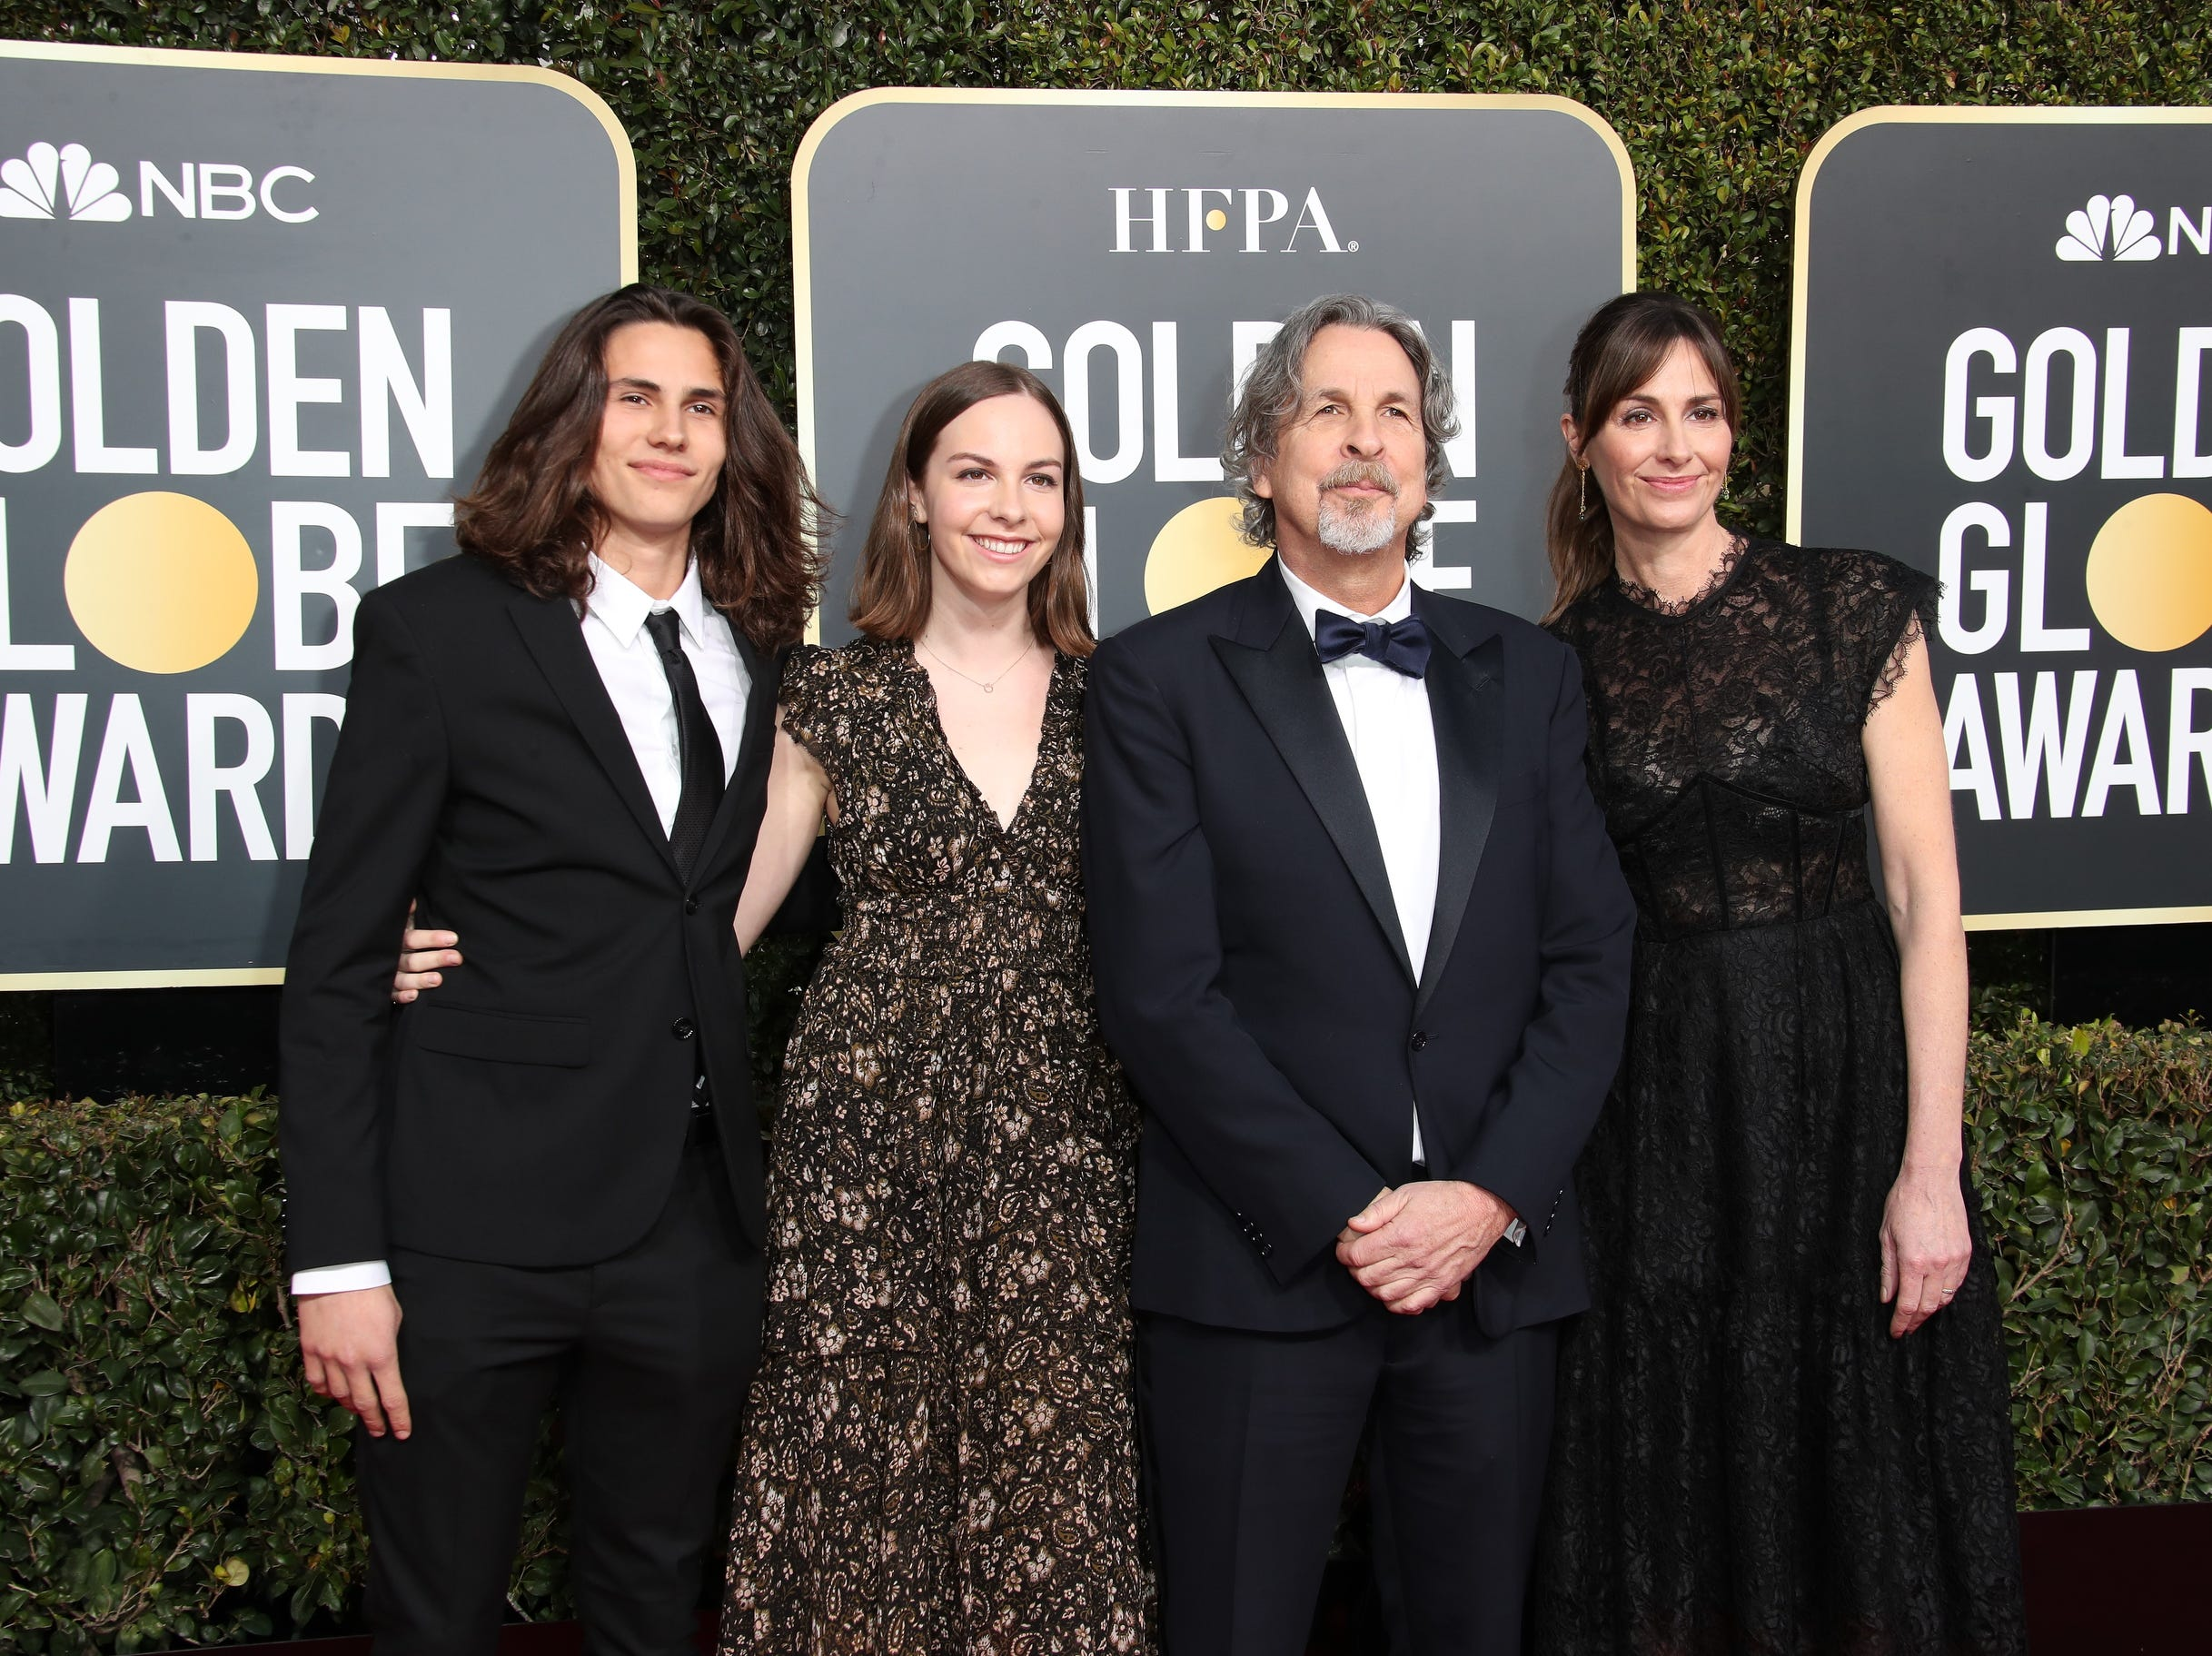 Peter Farrelly (2nd R) and Melinda Kocsis (R)